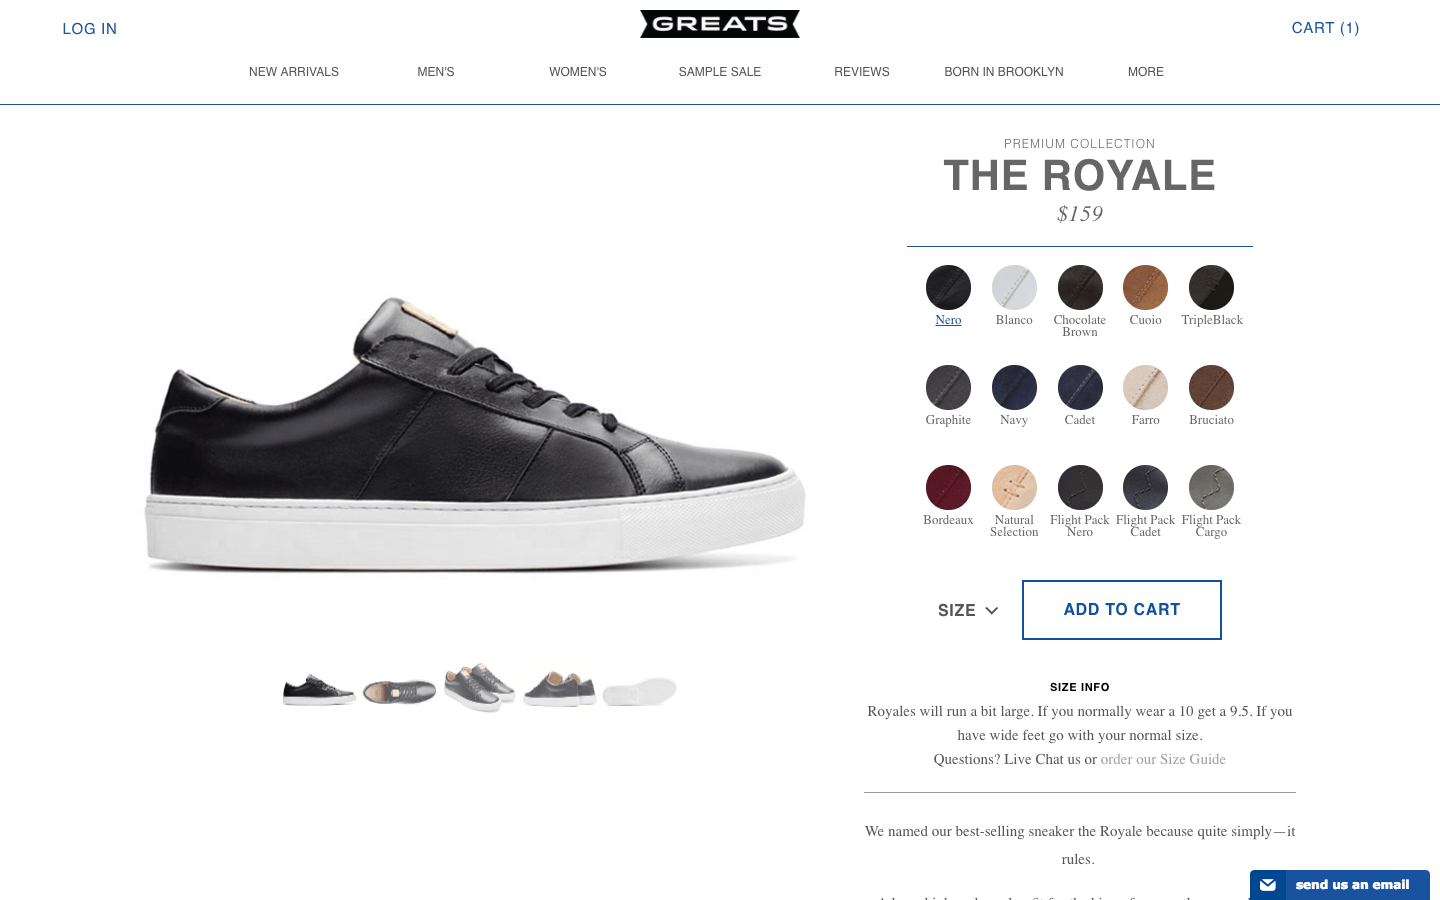 GREATS shoe product page